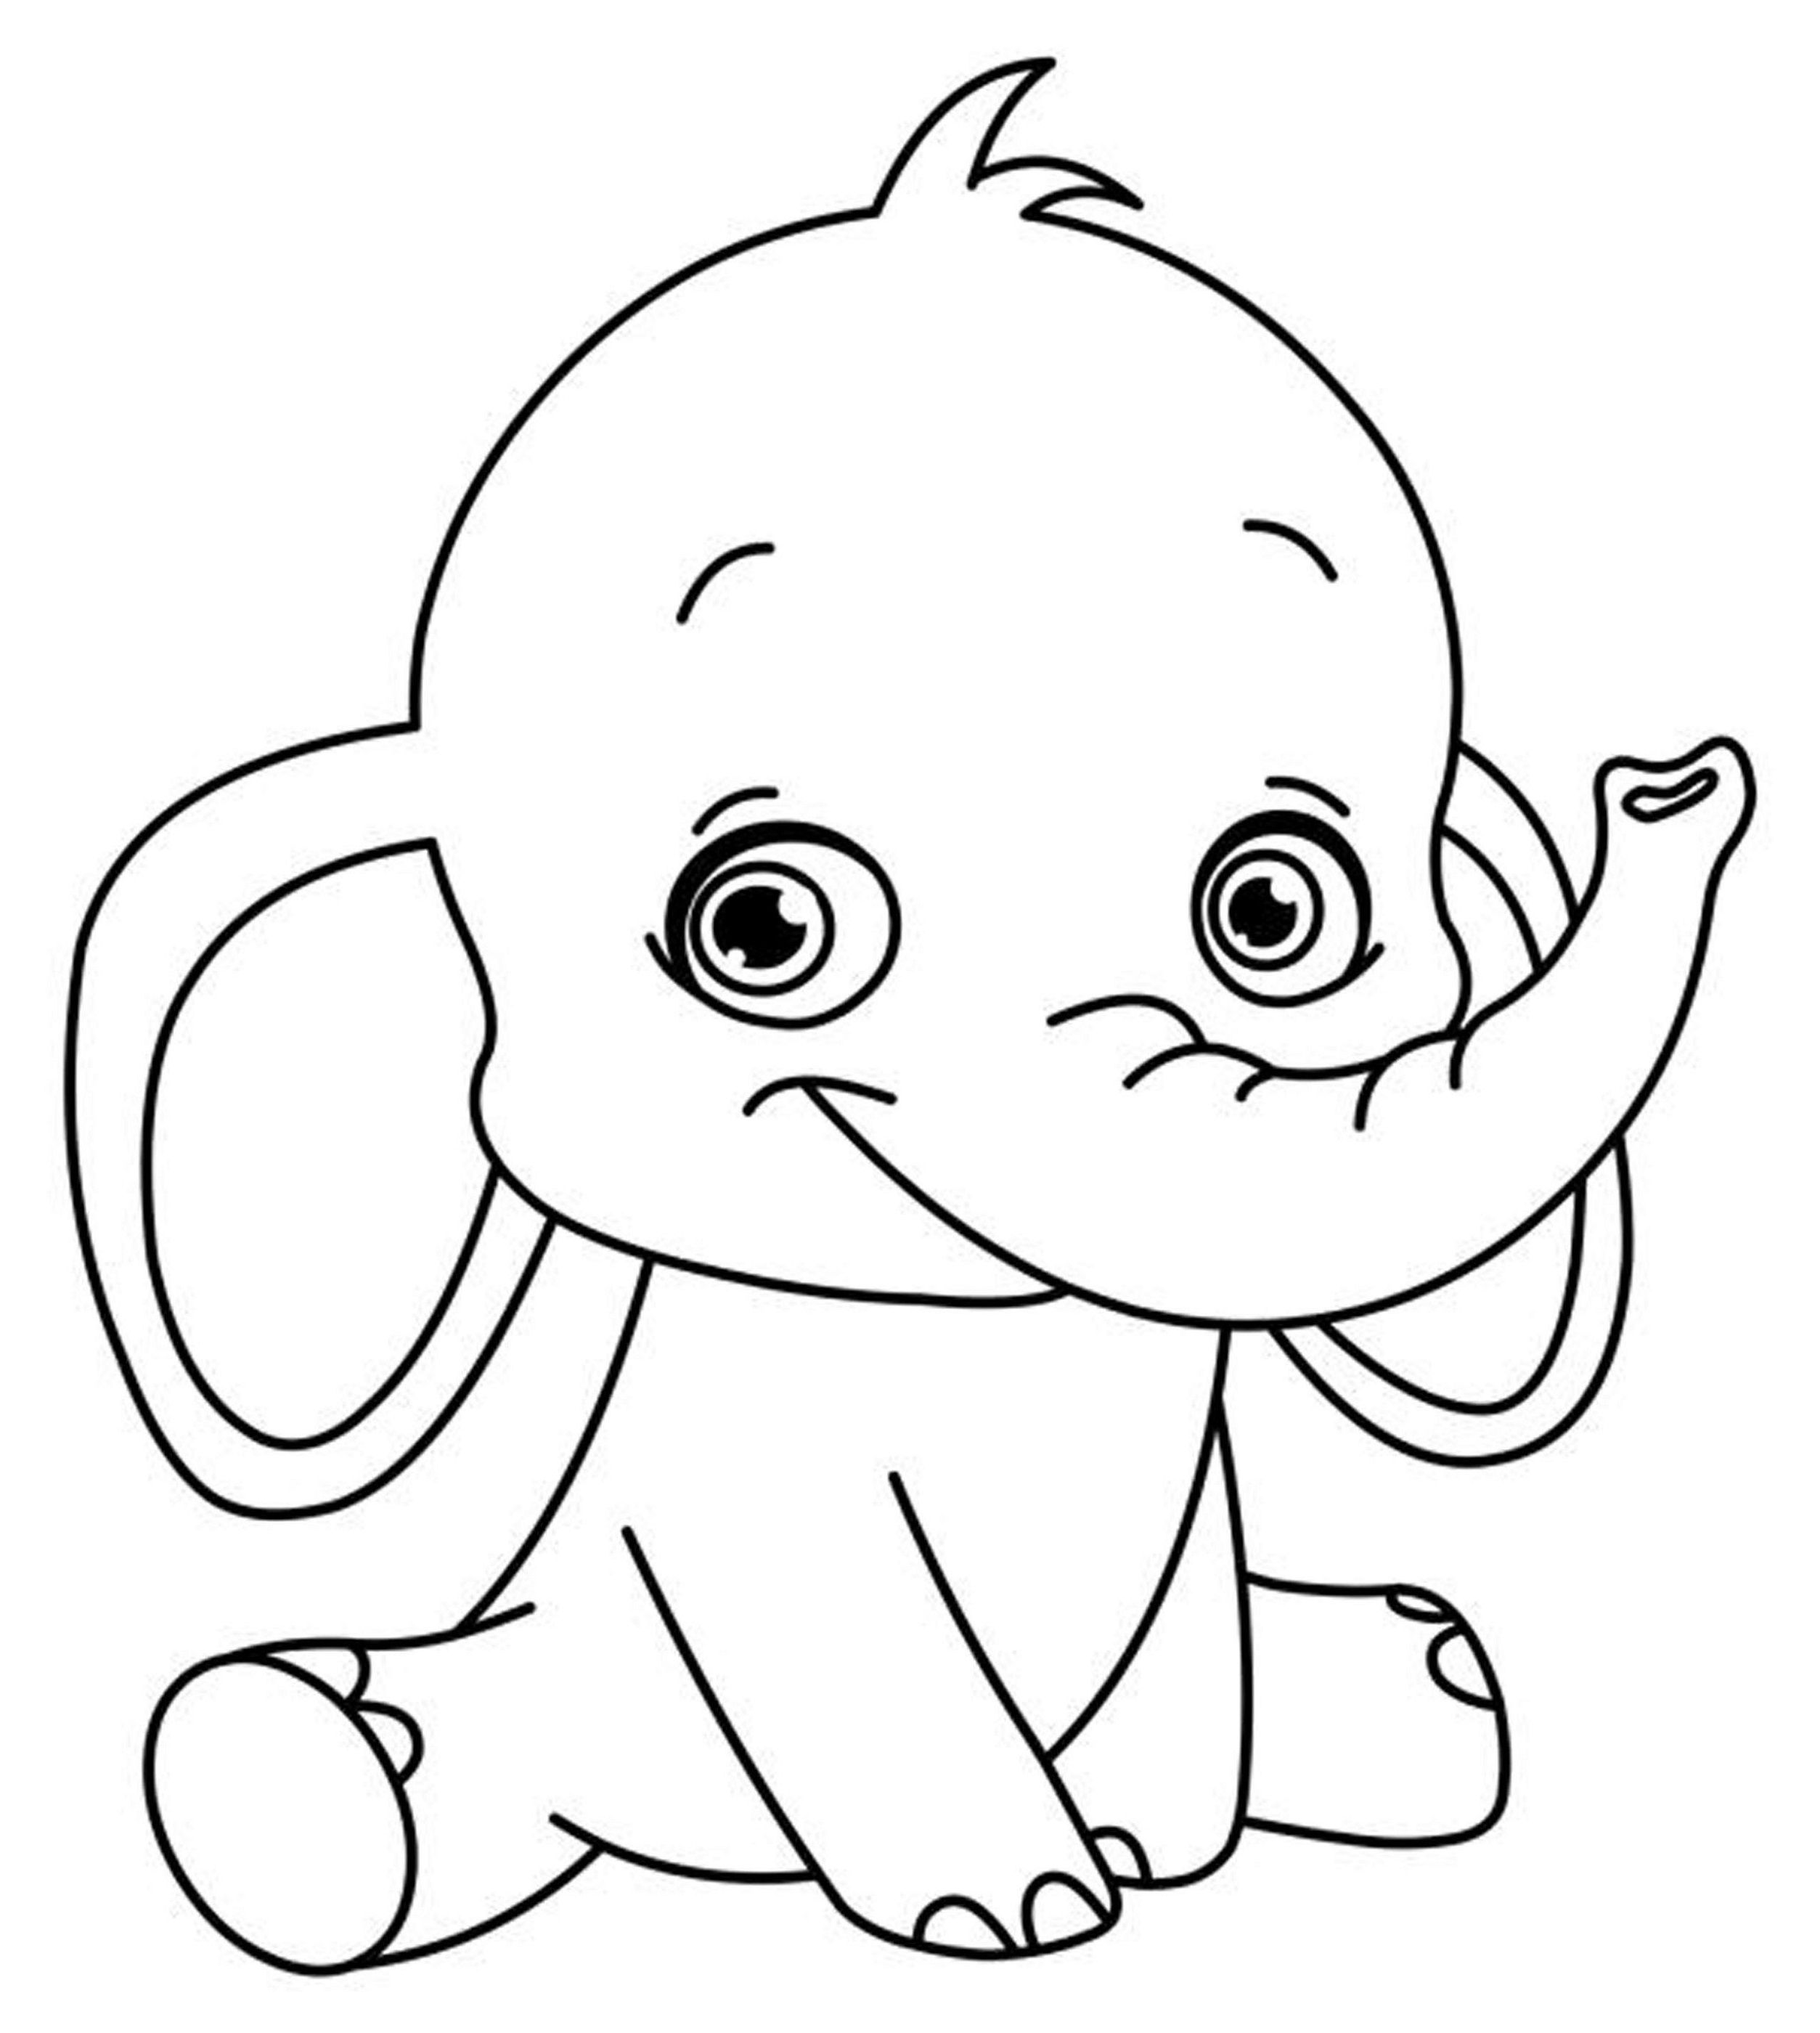 Easy Printable Coloring Pages Elephant Coloring Page Kids Printable Coloring Pages Cool Coloring Pages